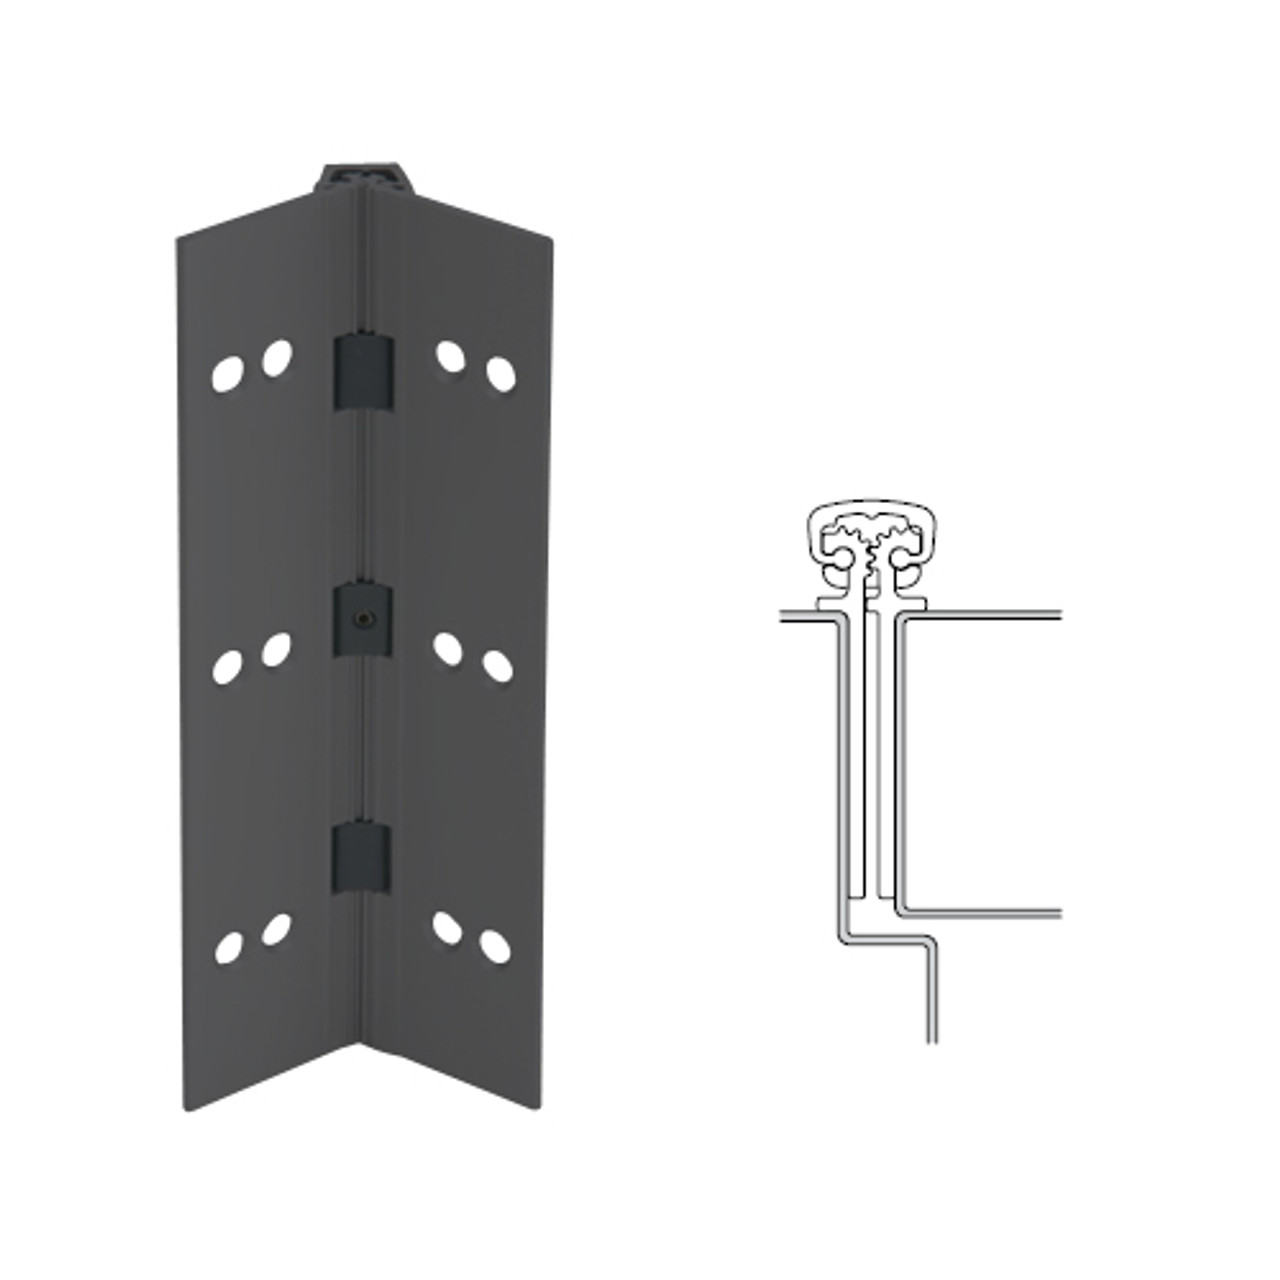 027XY-315AN-95-TFWD IVES Full Mortise Continuous Geared Hinges with Thread Forming Screws in Anodized Black